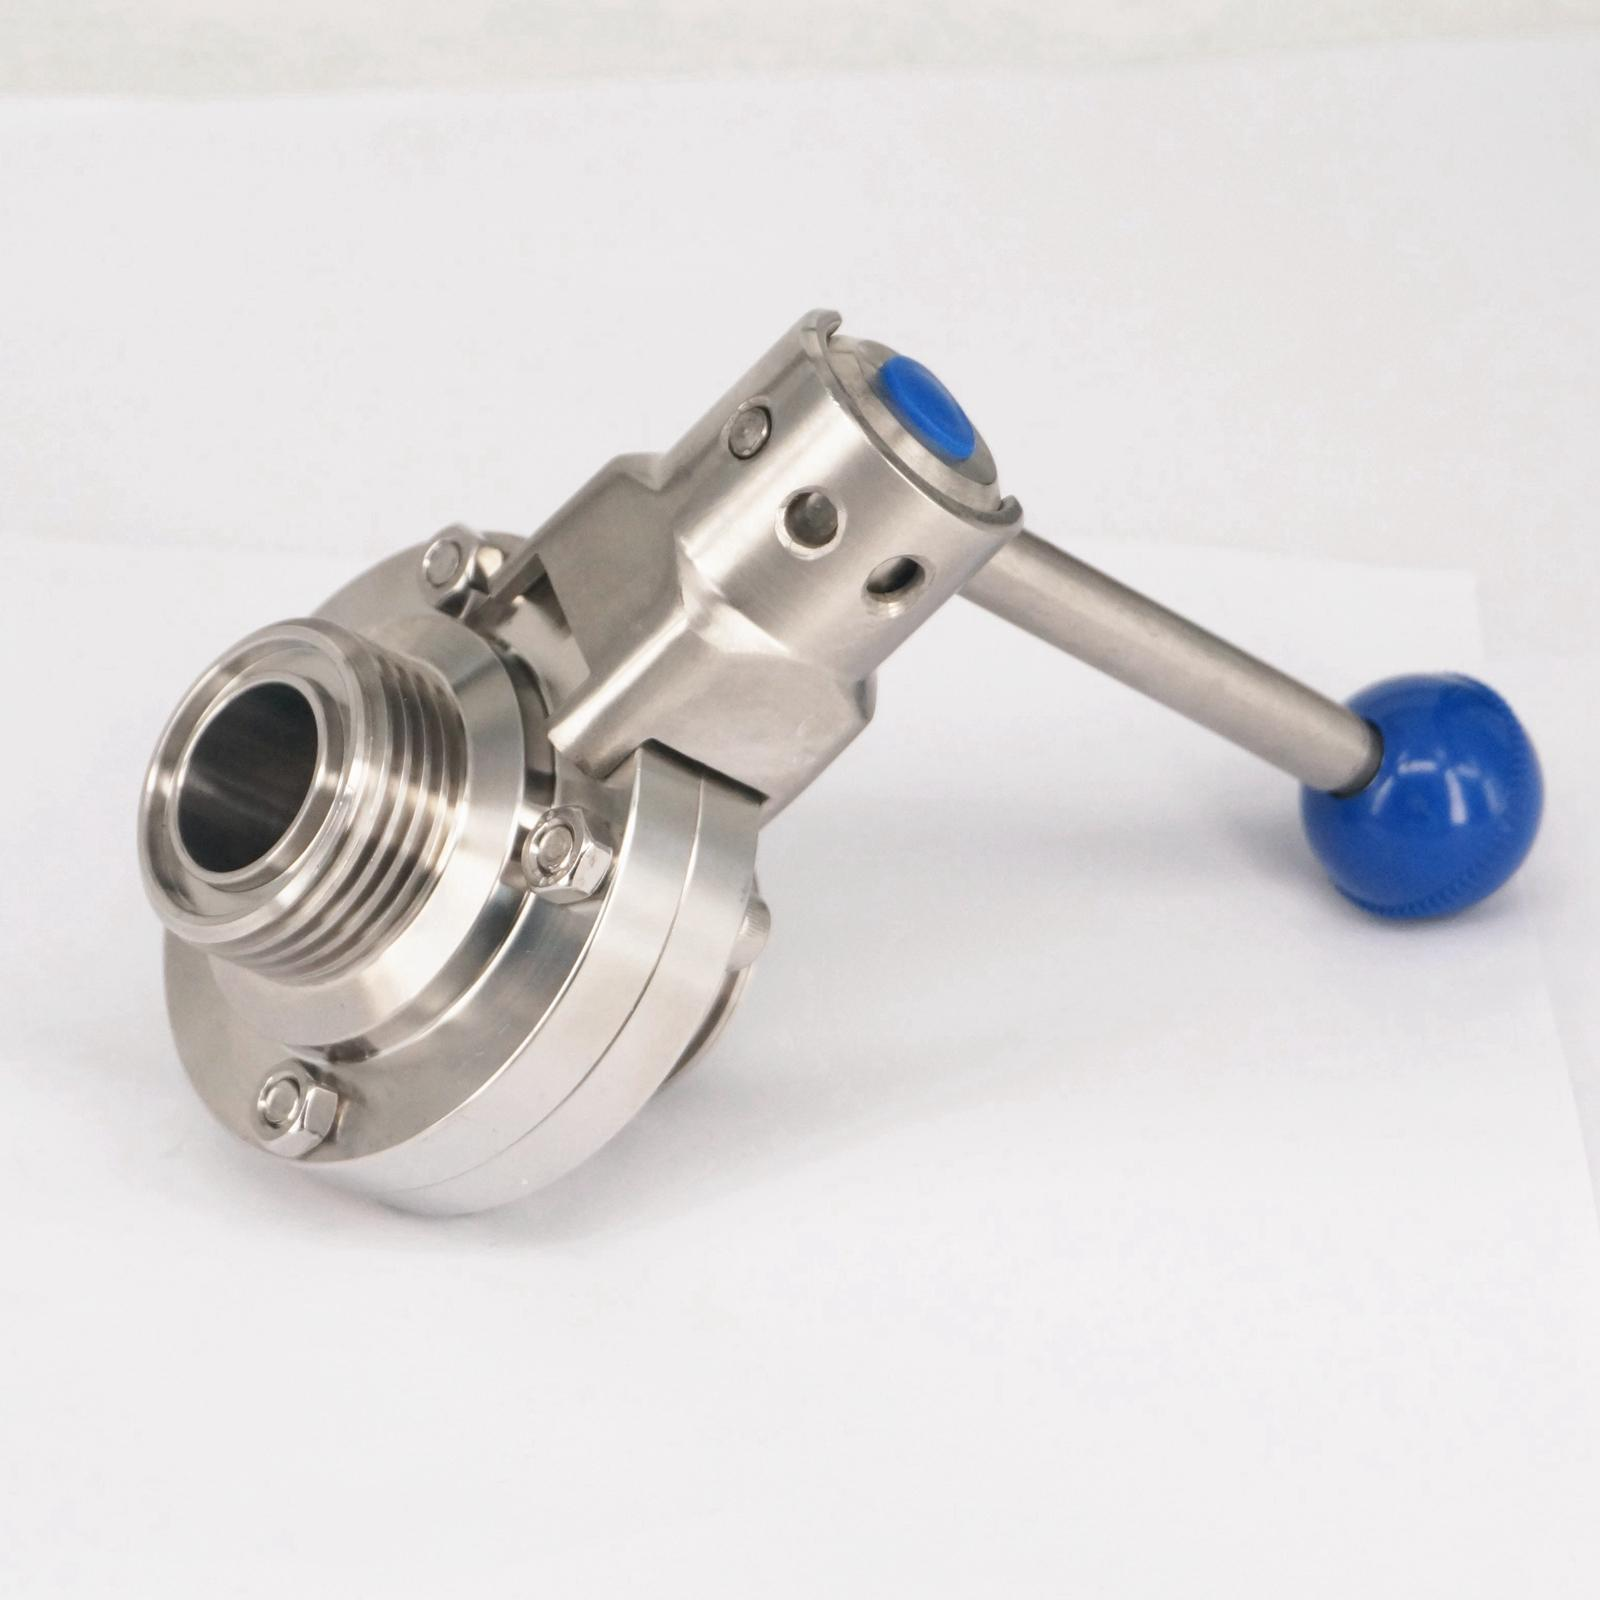 1 25mm 304 Stainless Steel Sanitary T-Type Thread Union Connection Butterfly Valve Brew Beer Dairy Product dn100 silicon manual handle ss304 butterfly valve thread sanitary stainless steel